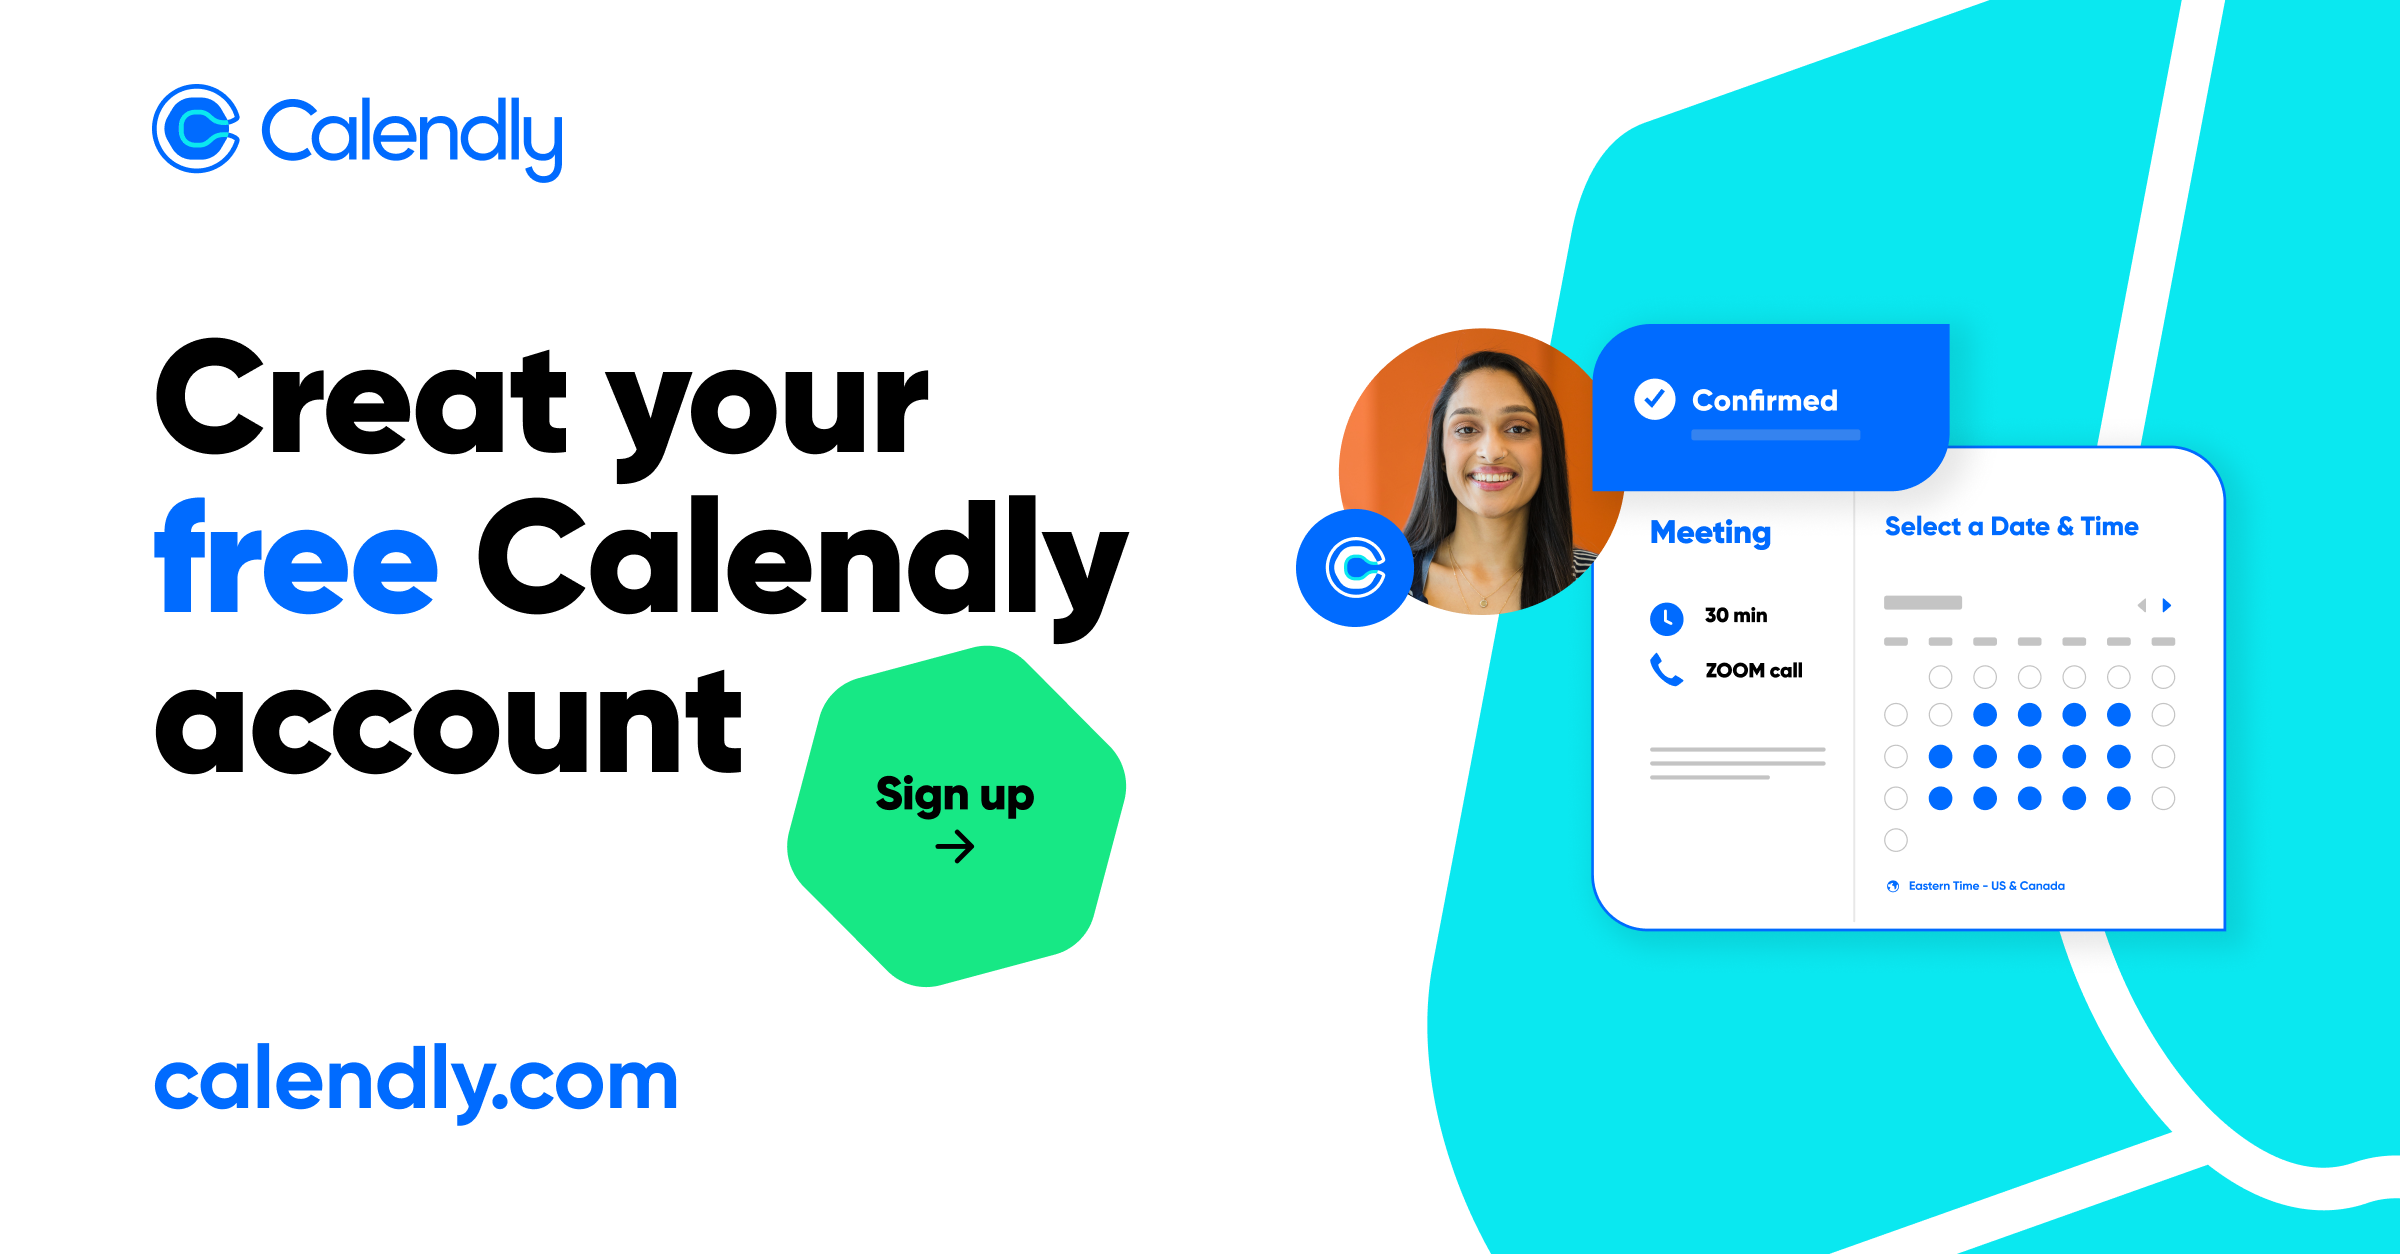 Building sales like Calendly